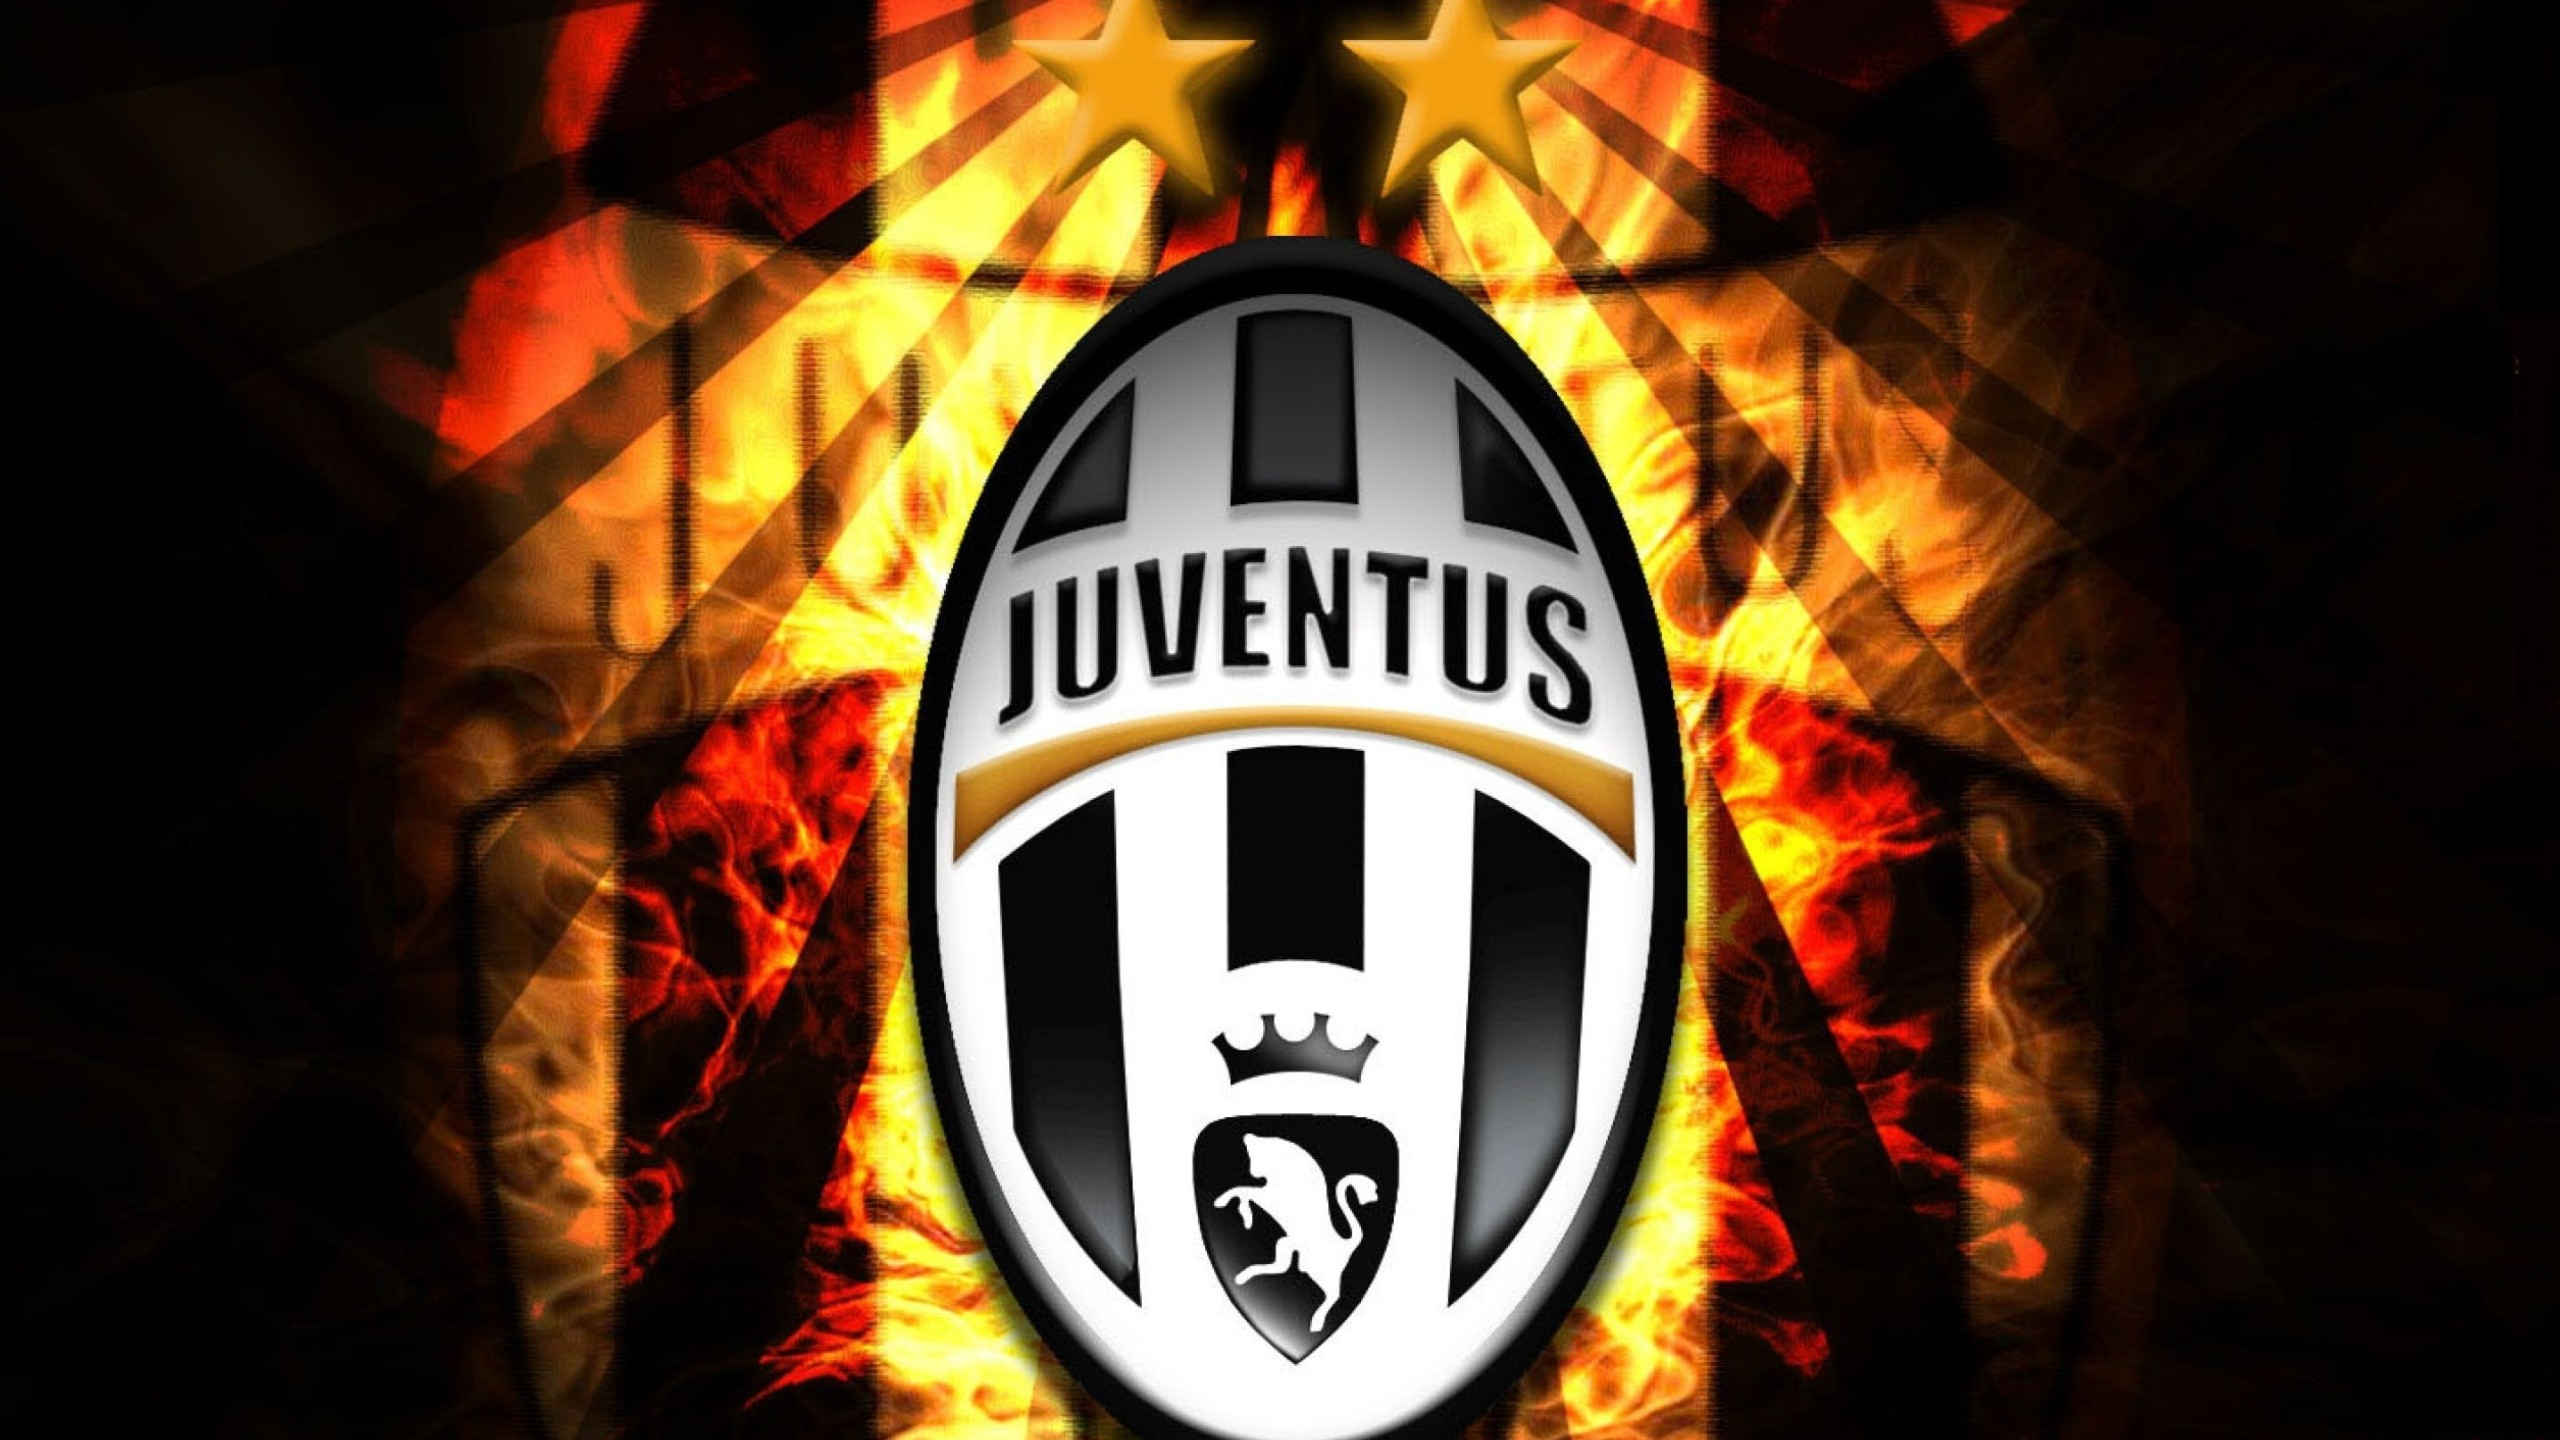 Juventus f c full hd fond d 39 cran and arri re plan for Fond d ecran juventus pc